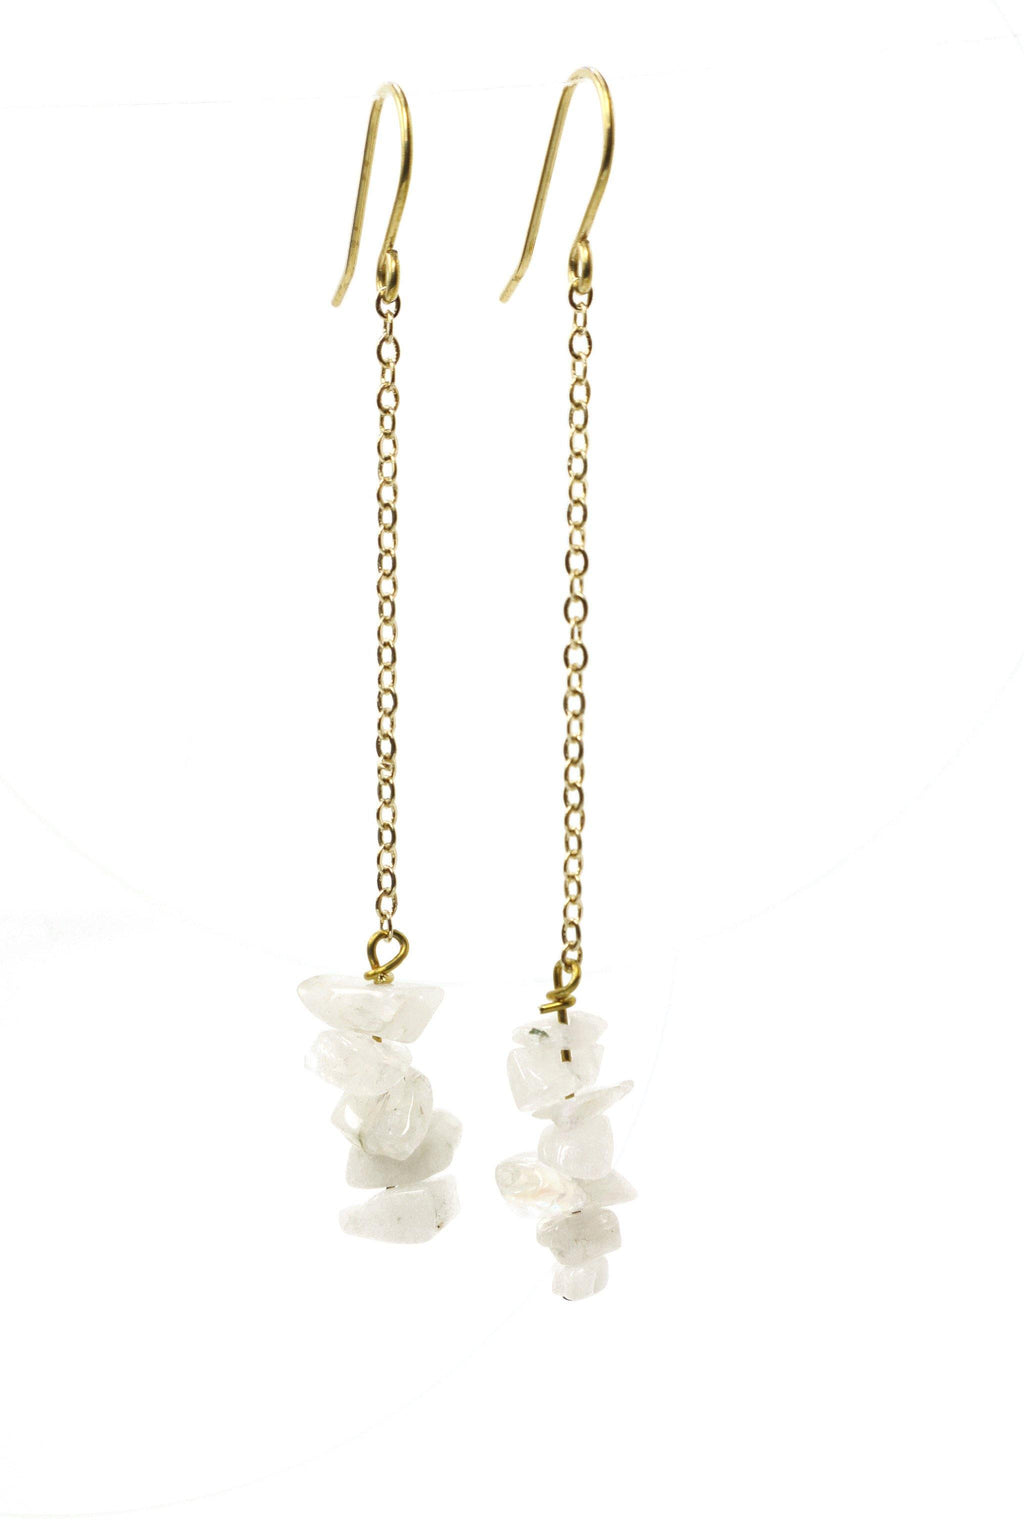 These stacked stone earrings feature a beautiful white moonstone chip gemstone on a gold plated chain with gold plated hooks.